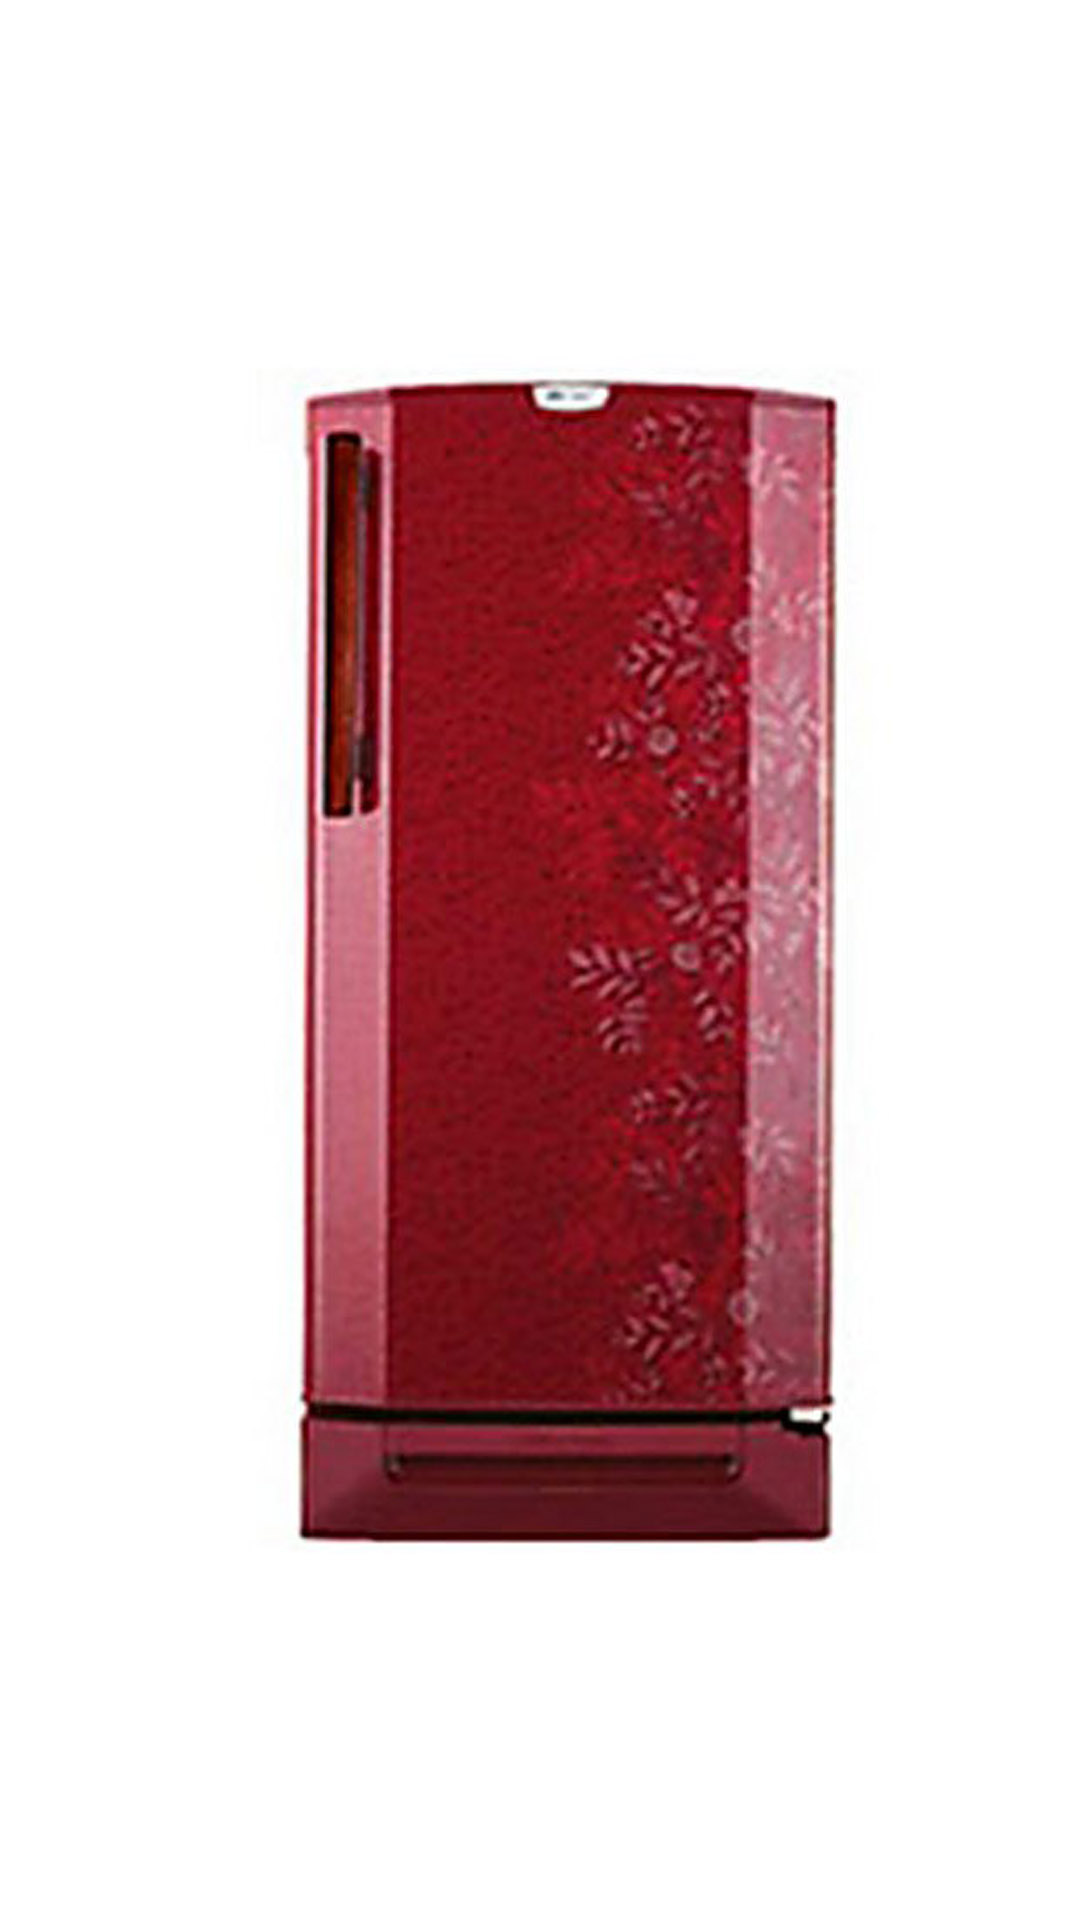 Godrej RD EDGEPRO190PDS 190 L Single Door Refrigerator